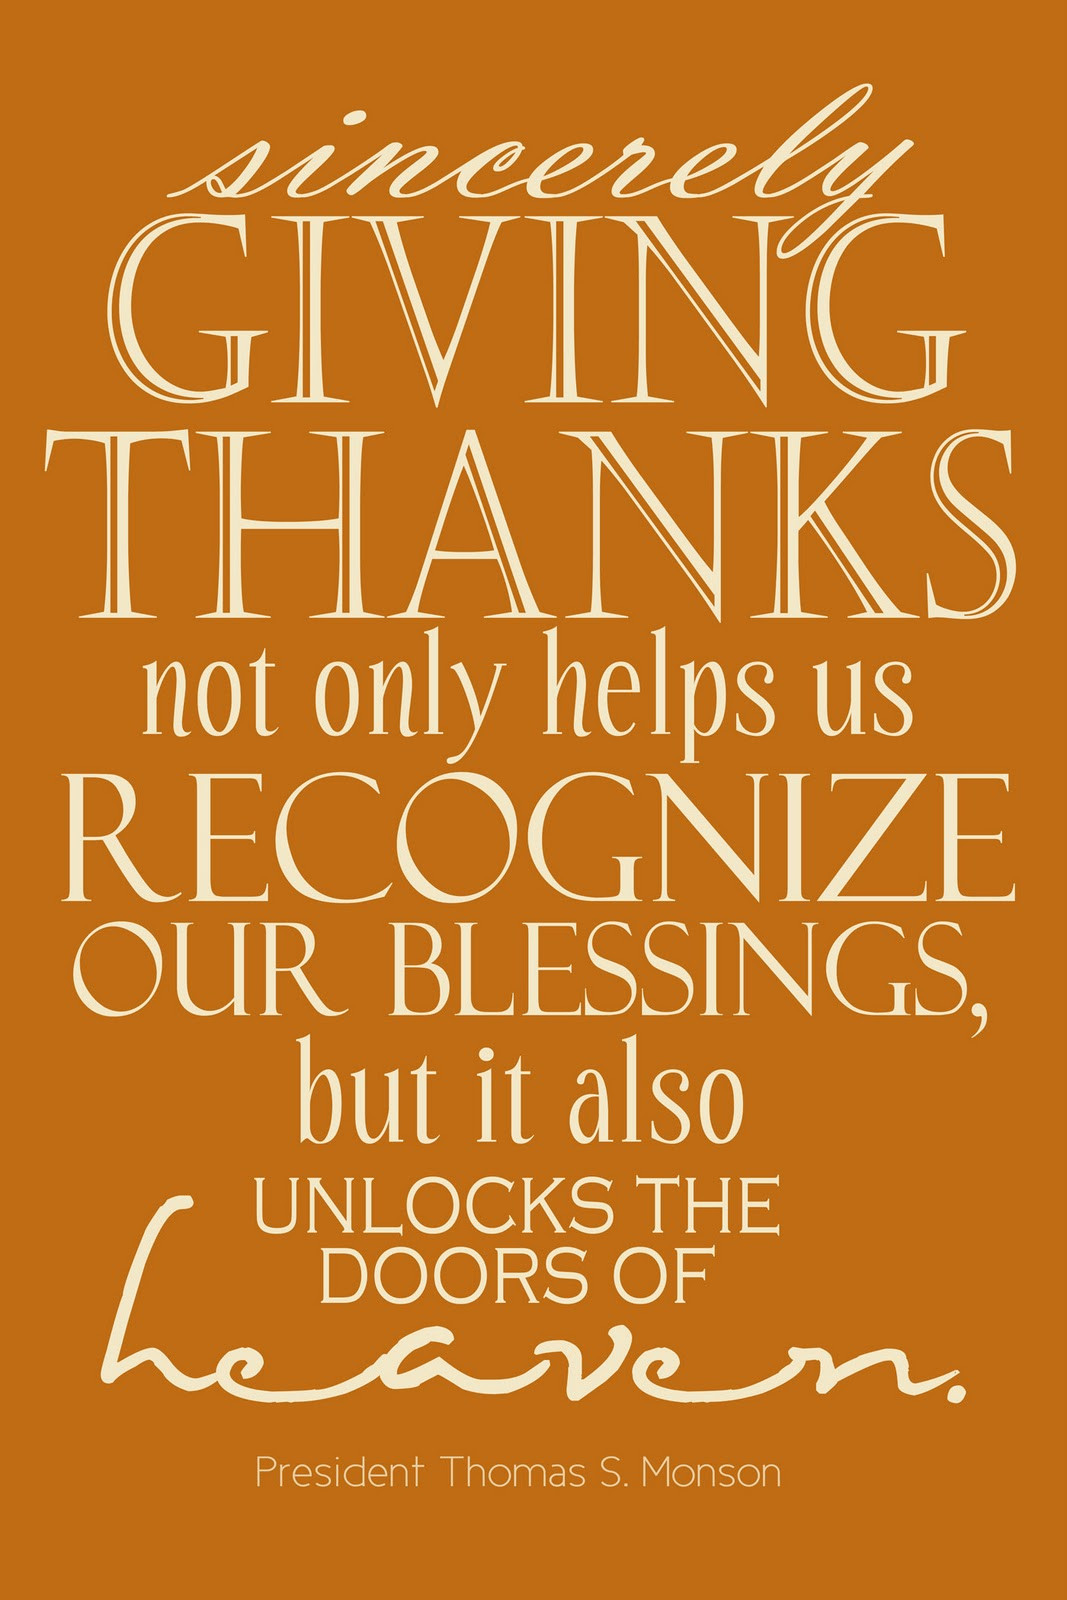 Lds Thanksgiving Quotes  Lds Quotes Thanksgiving QuotesGram